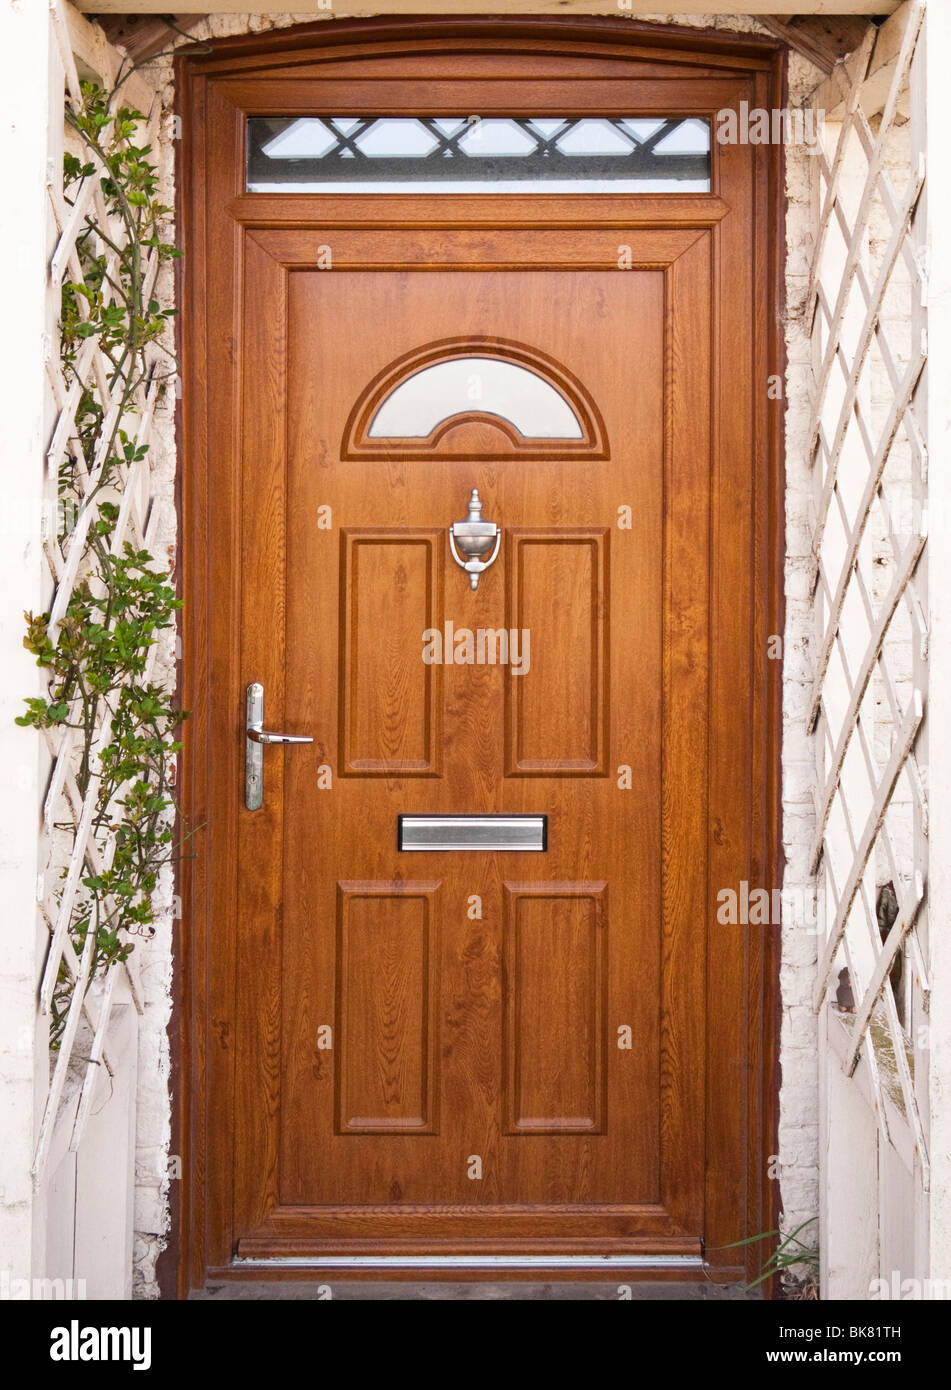 Front door with trellis work porch surround UK & Front door with trellis work porch surround UK Stock Photo: 29065921 ...